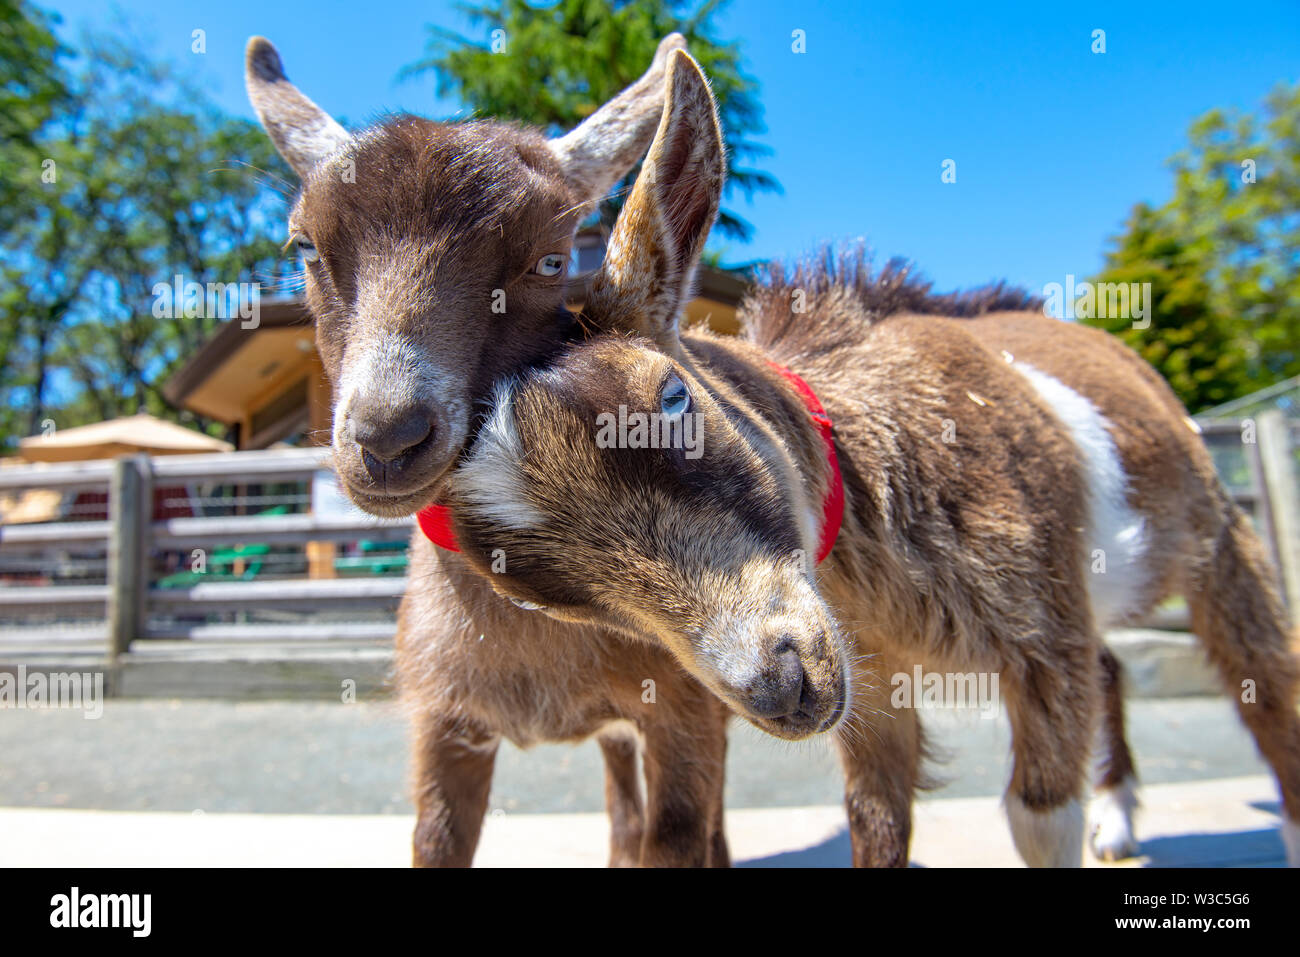 Adorable baby goats portrait taken at Victoria's Beacon Hill Park in Vancouver Island, Canada Stock Photo